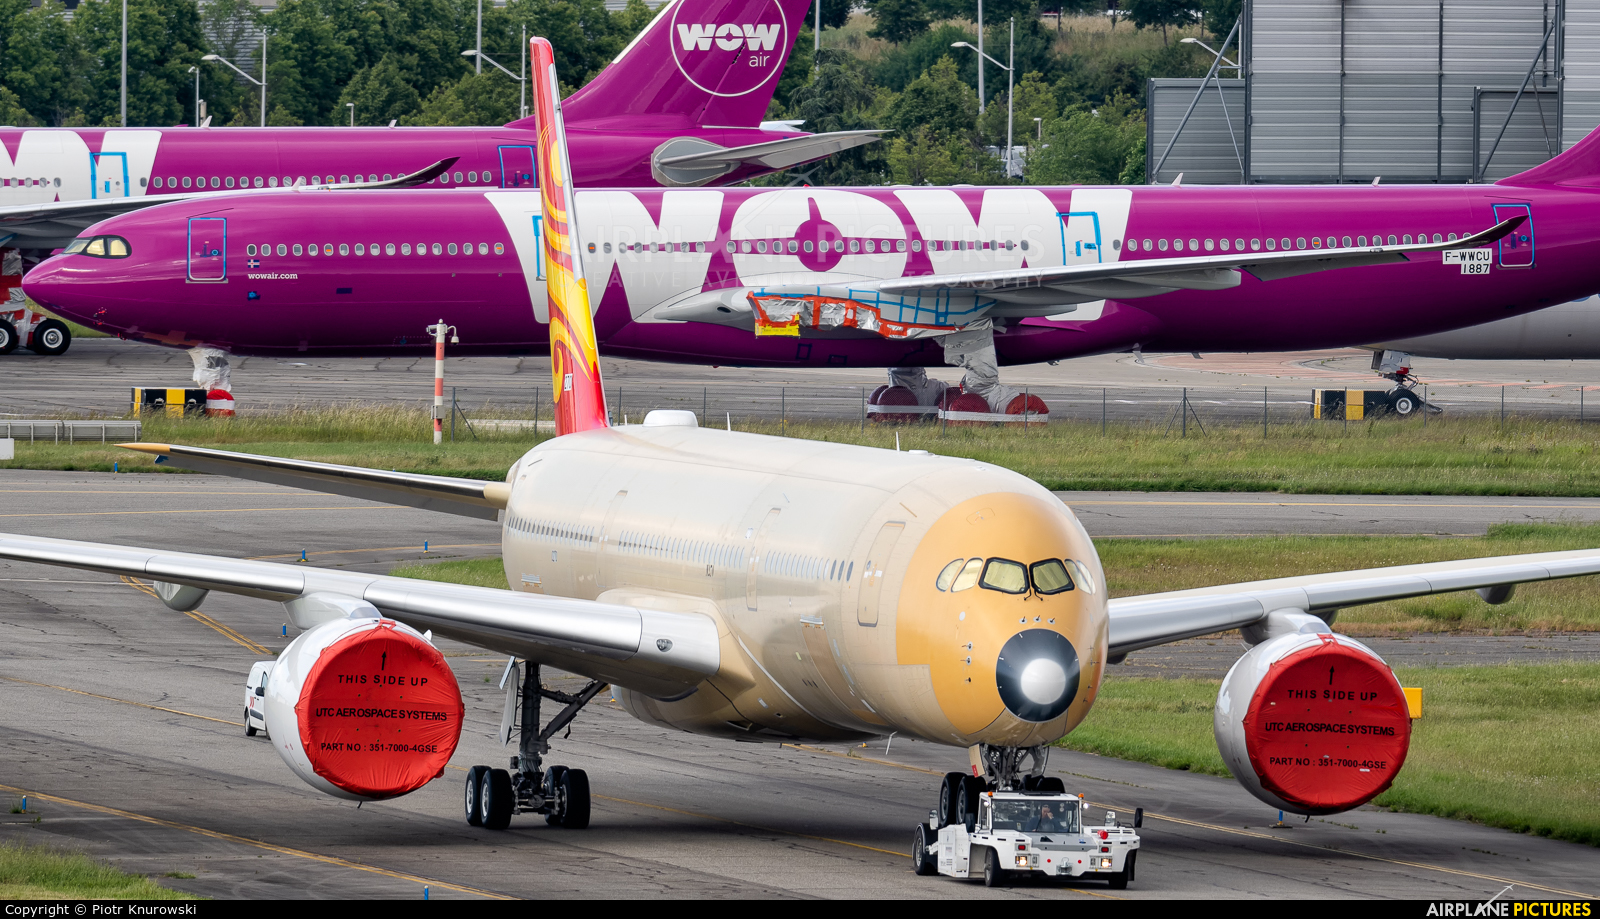 Hainan Airlines F-WZFT aircraft at Toulouse - Blagnac